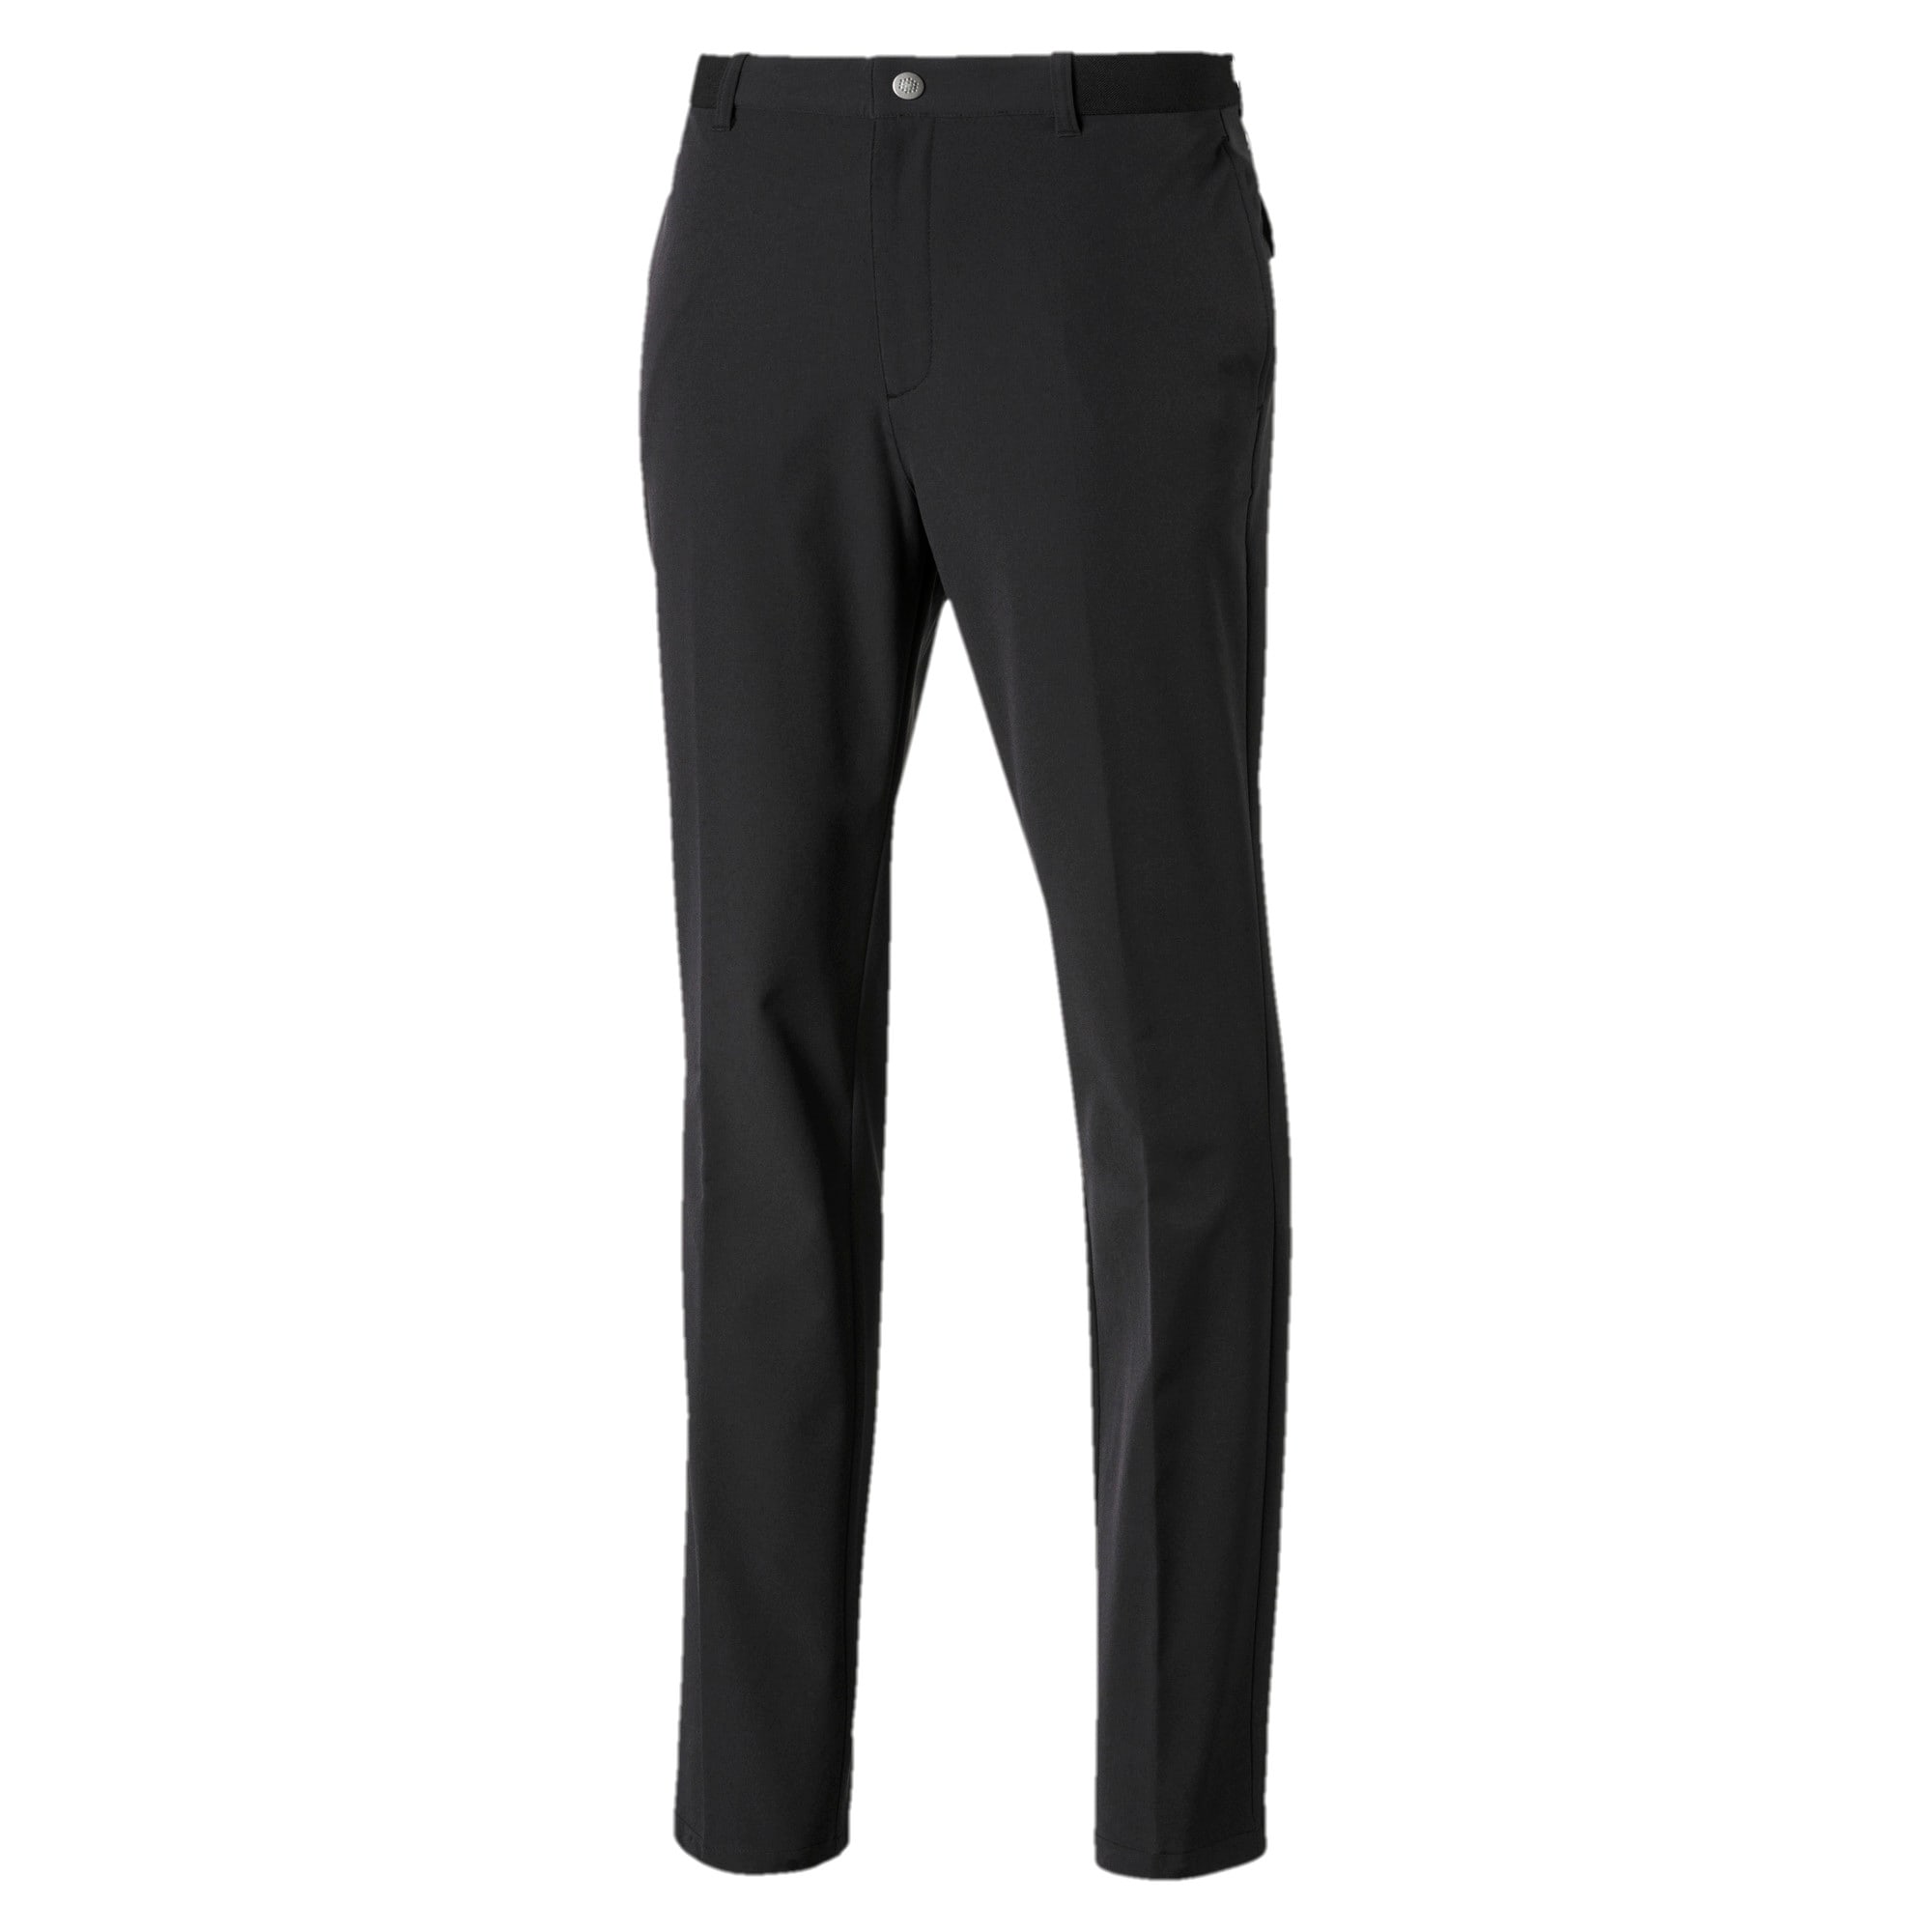 Thumbnail 4 of Stretch Utility 2.0 Herren Golf Hose, Puma Black, medium